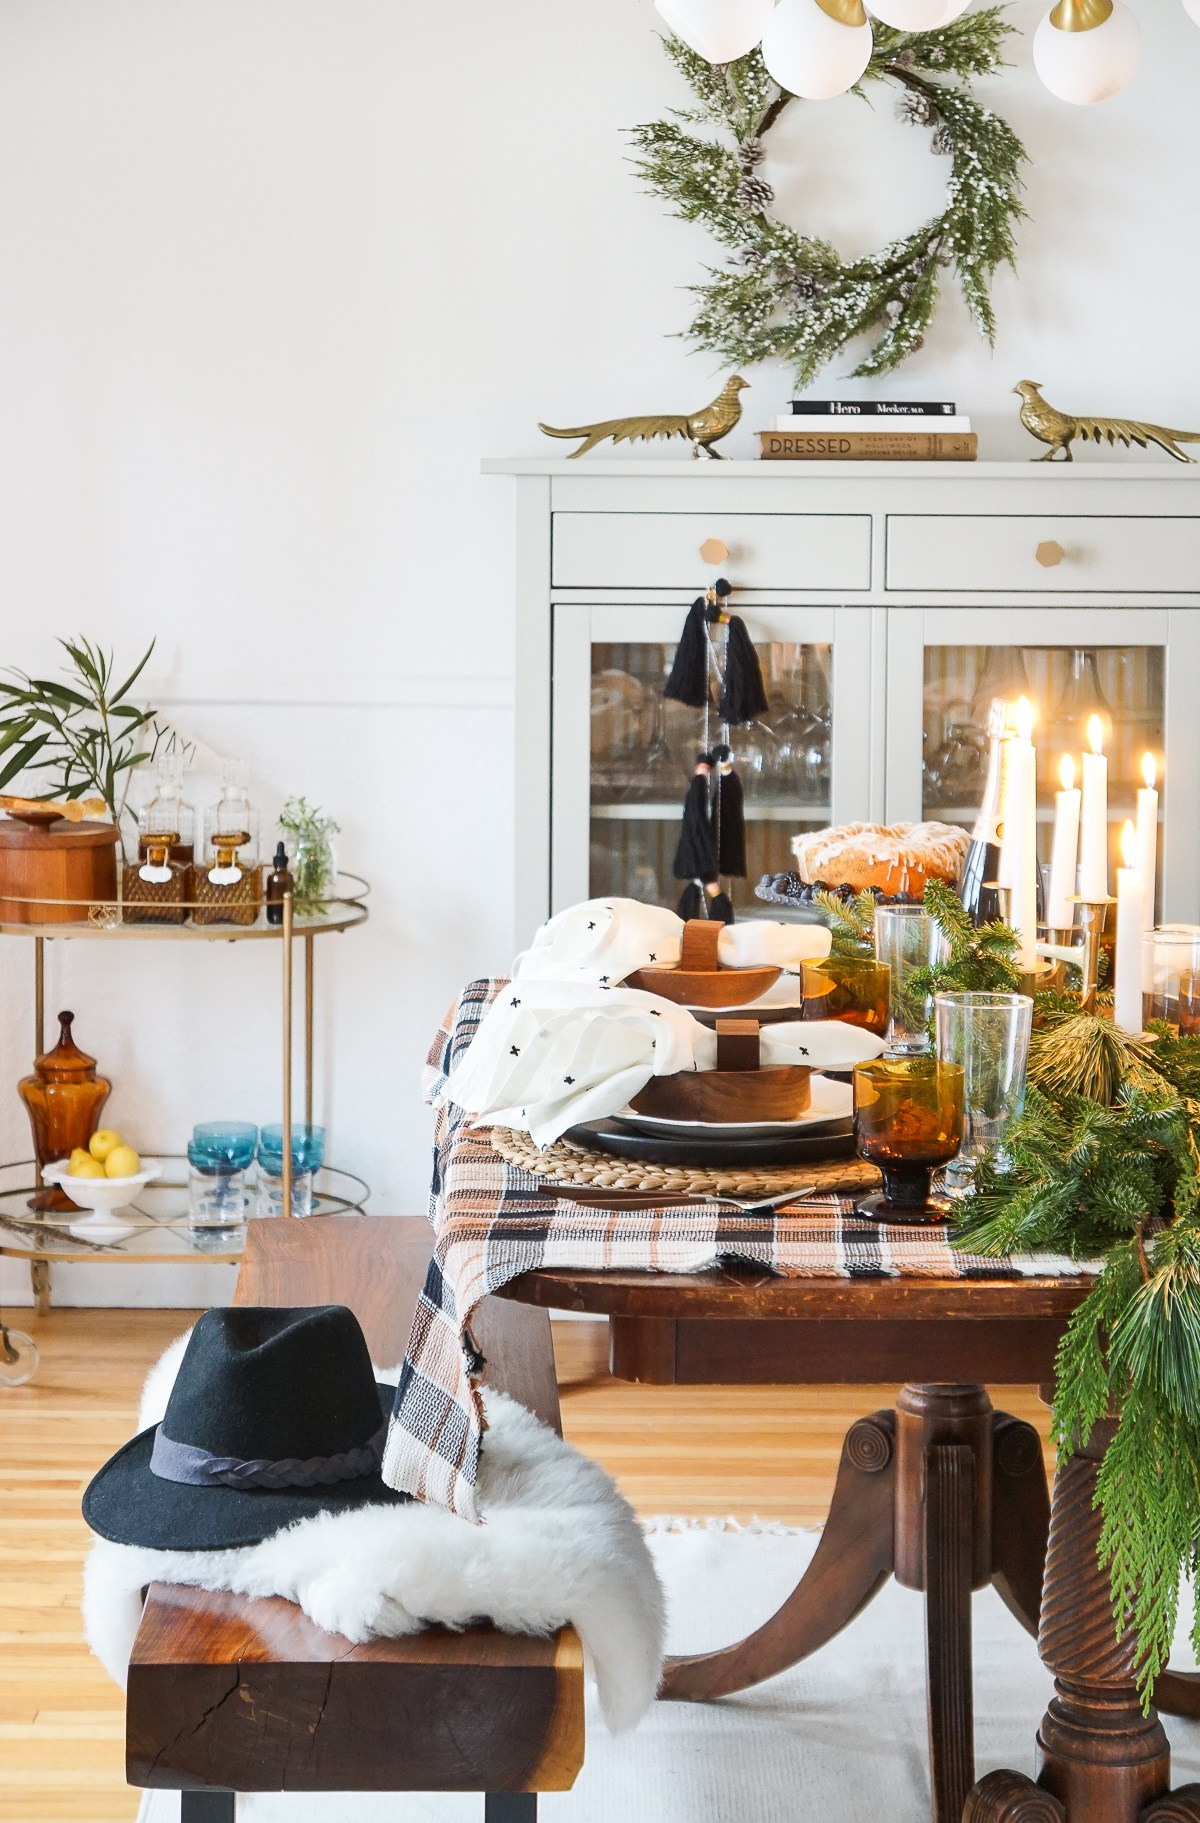 Plaid holiday table